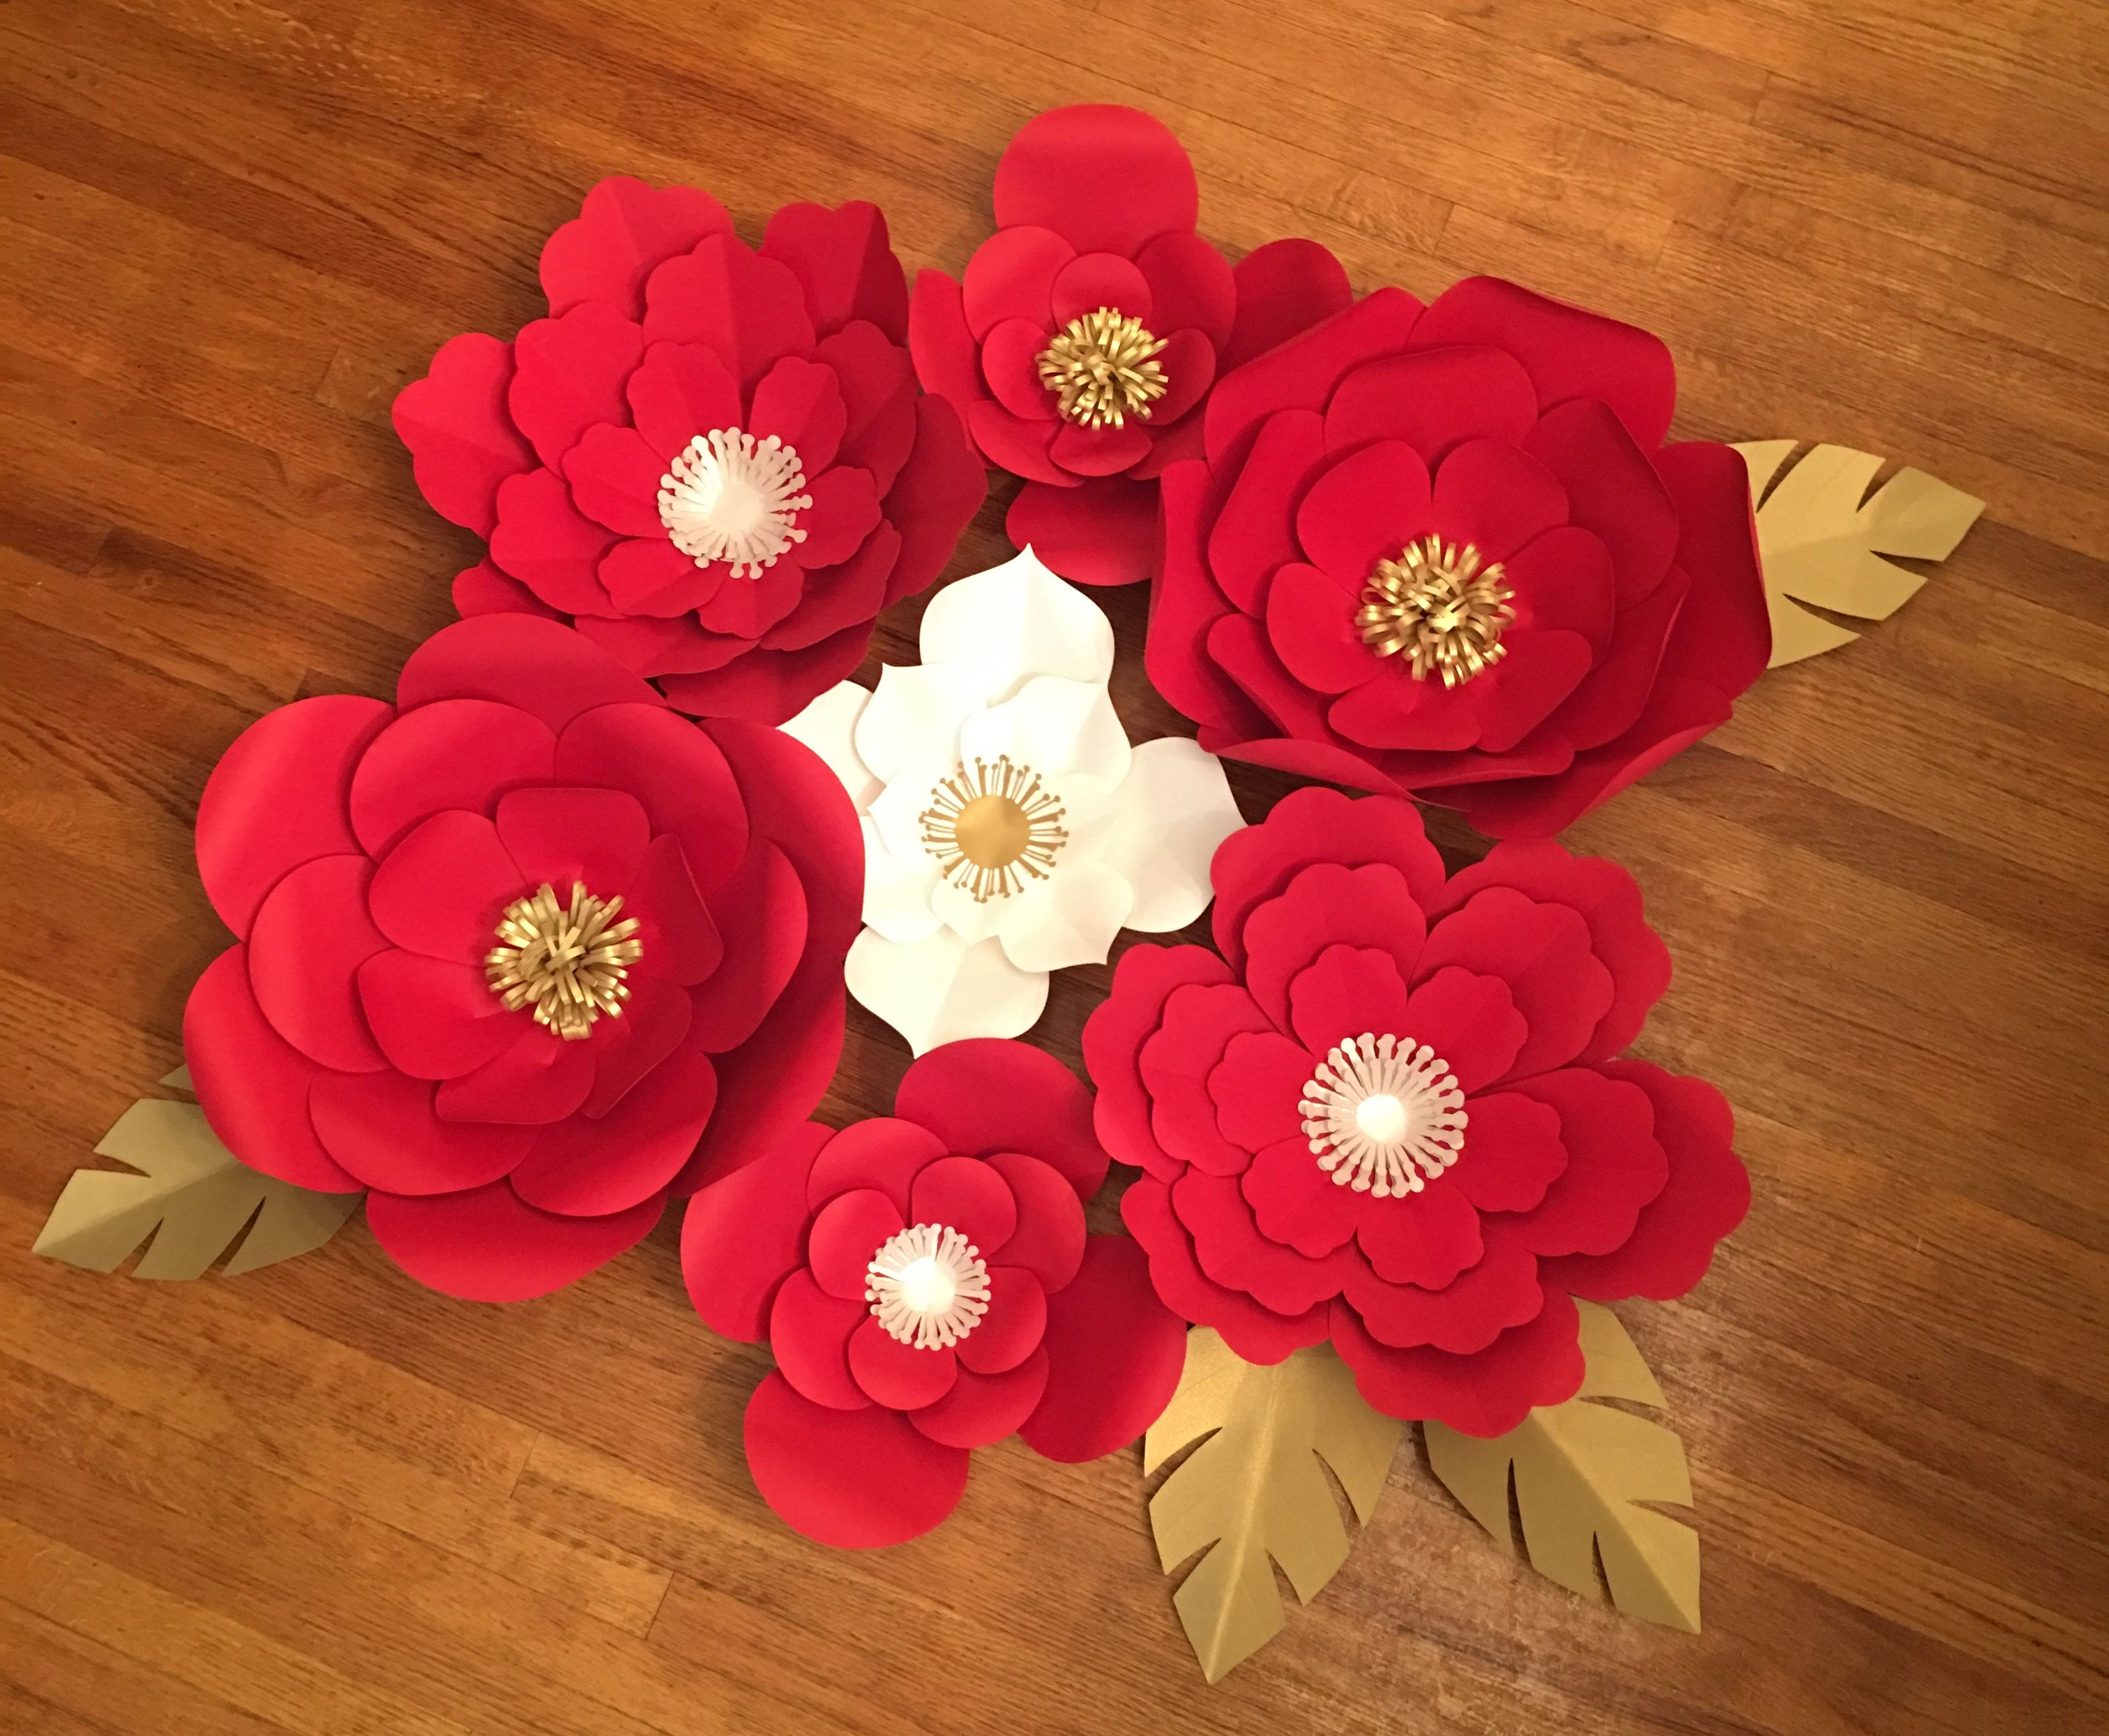 Romantic red and white paper flowers party backdrop decor  Flores